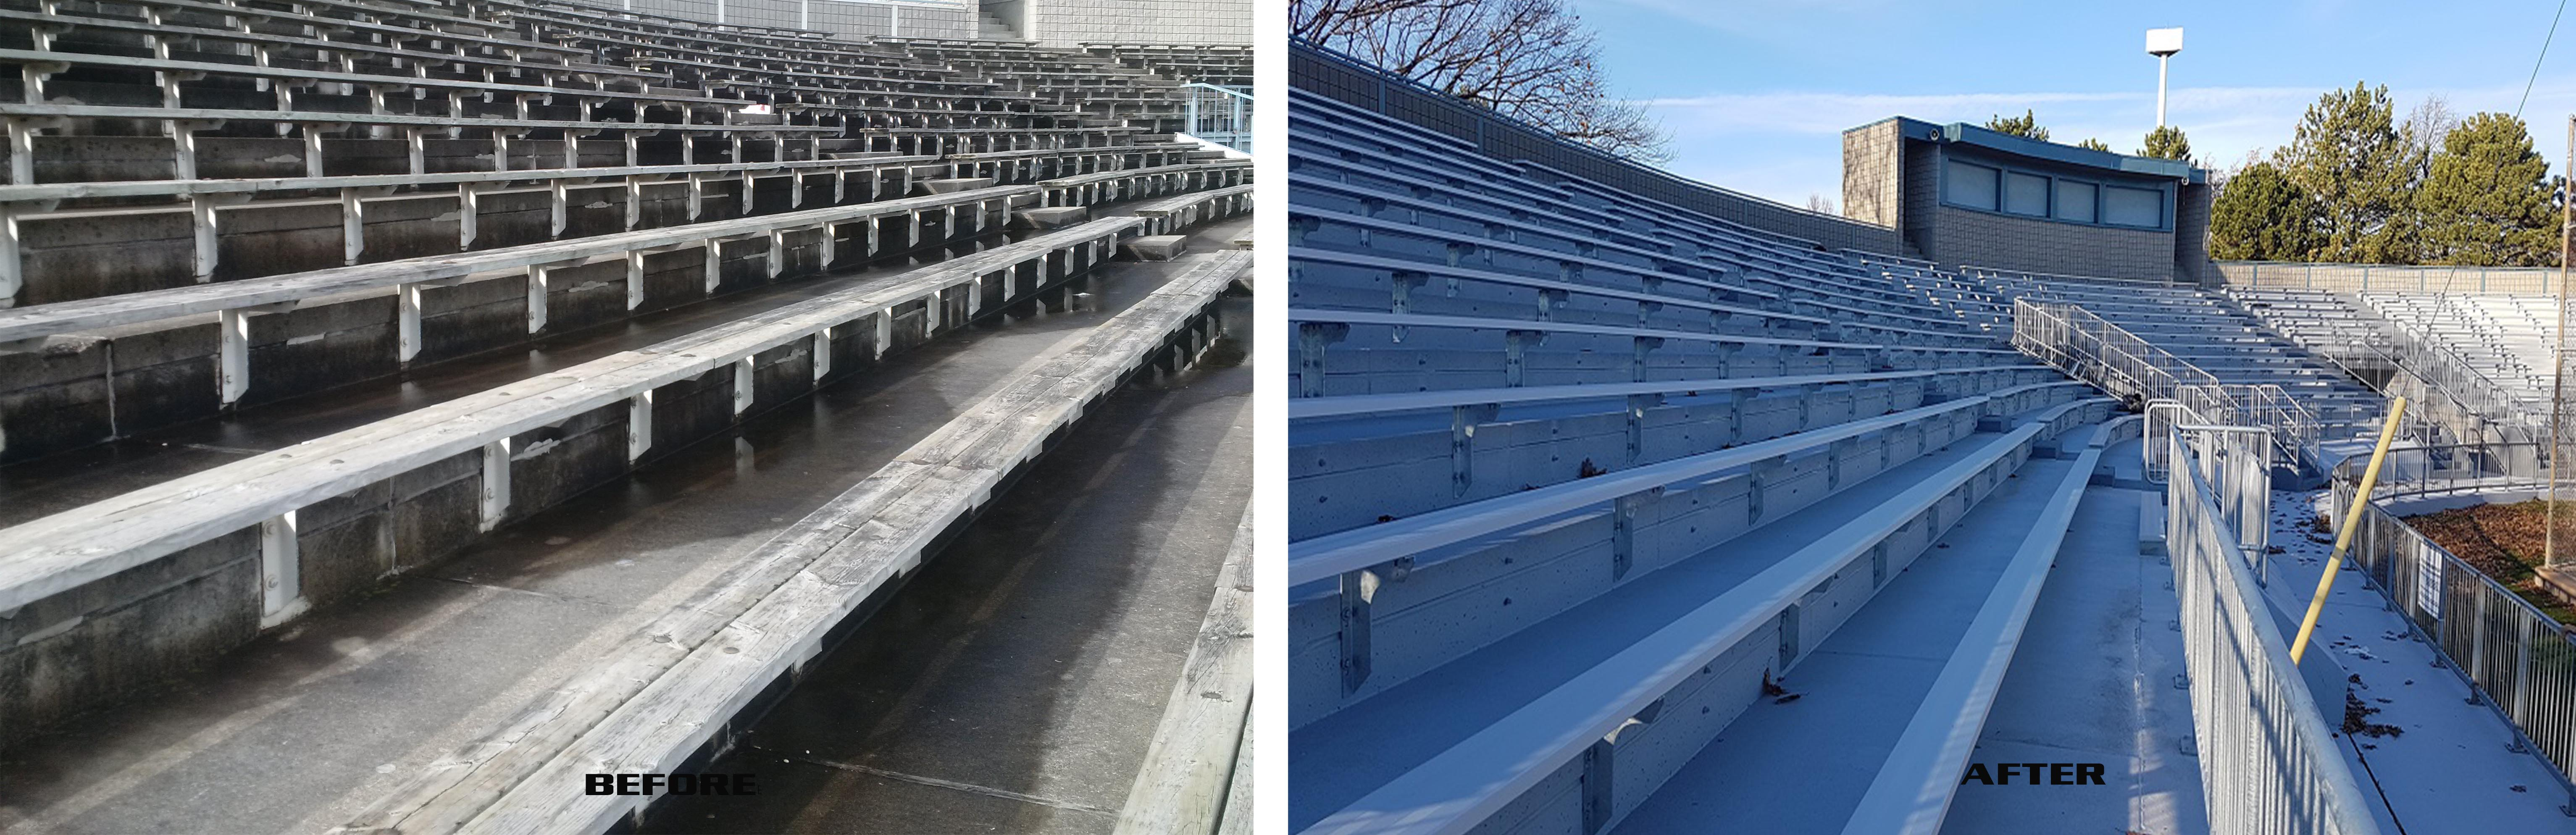 oakes-park-planks-before-and-after.jpg